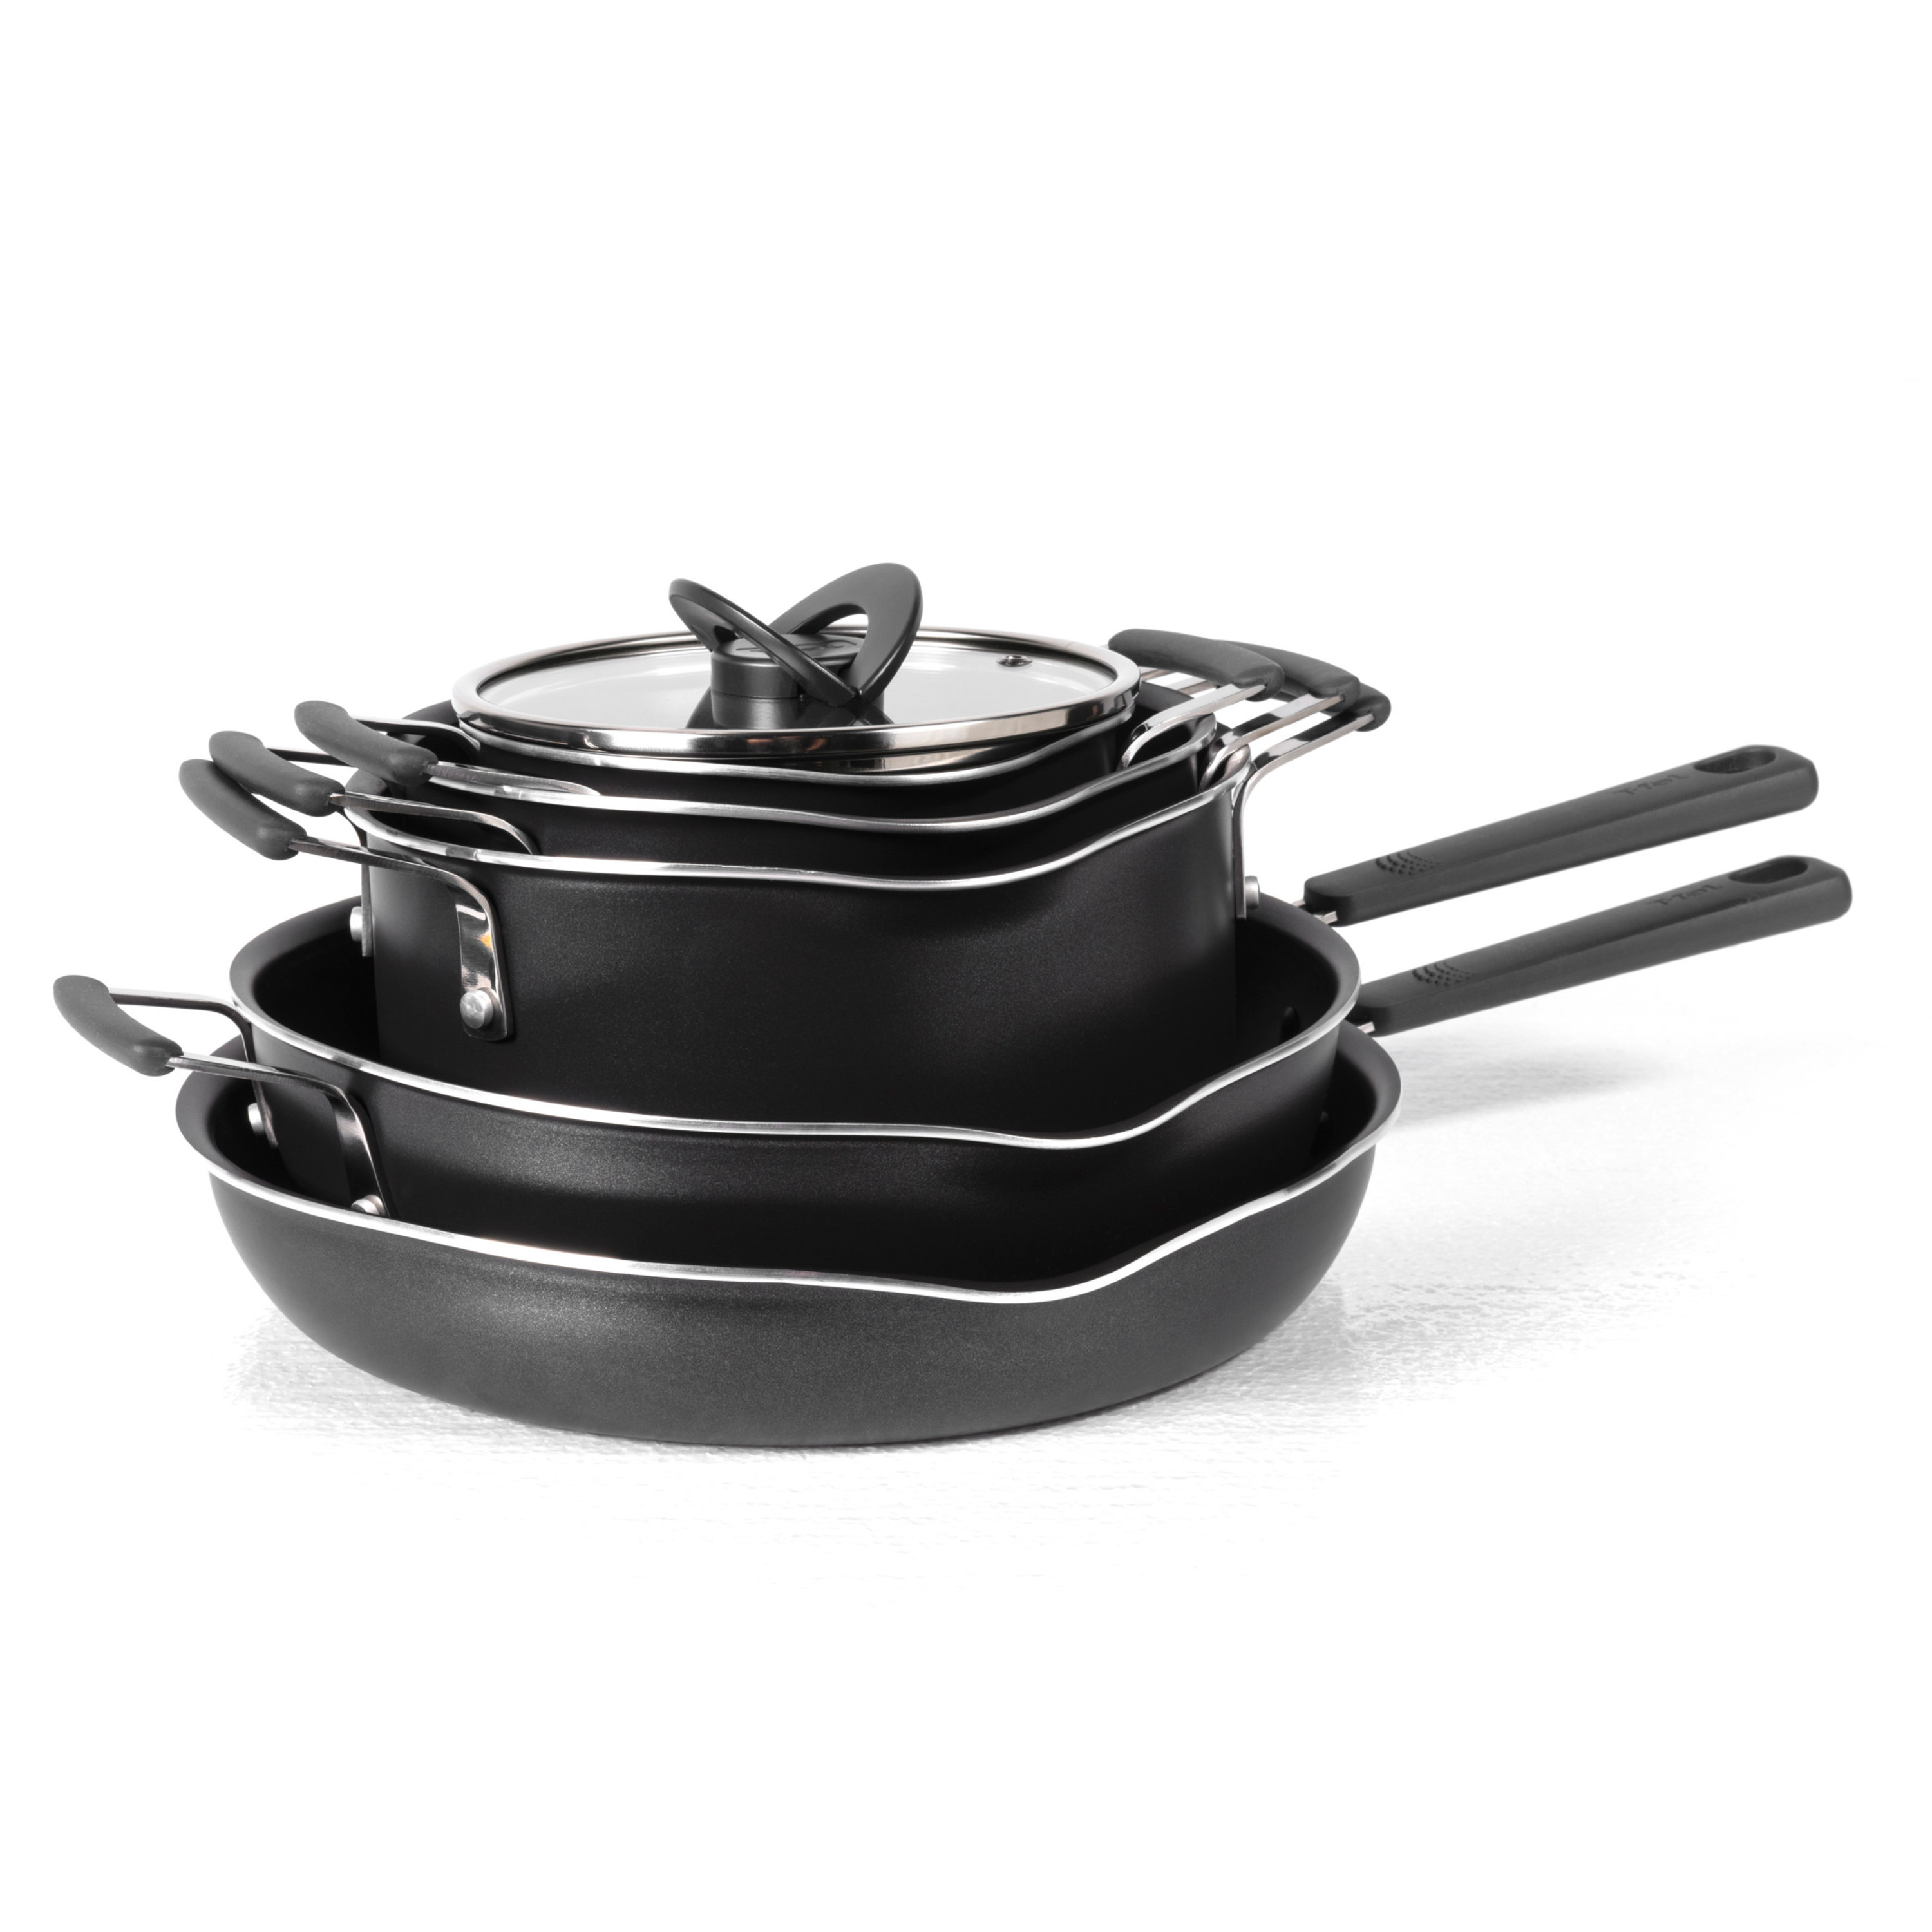 T-fal Stackables Titanium Non-Stick Multipurpose Space Saving 10 Piece Cookware Set